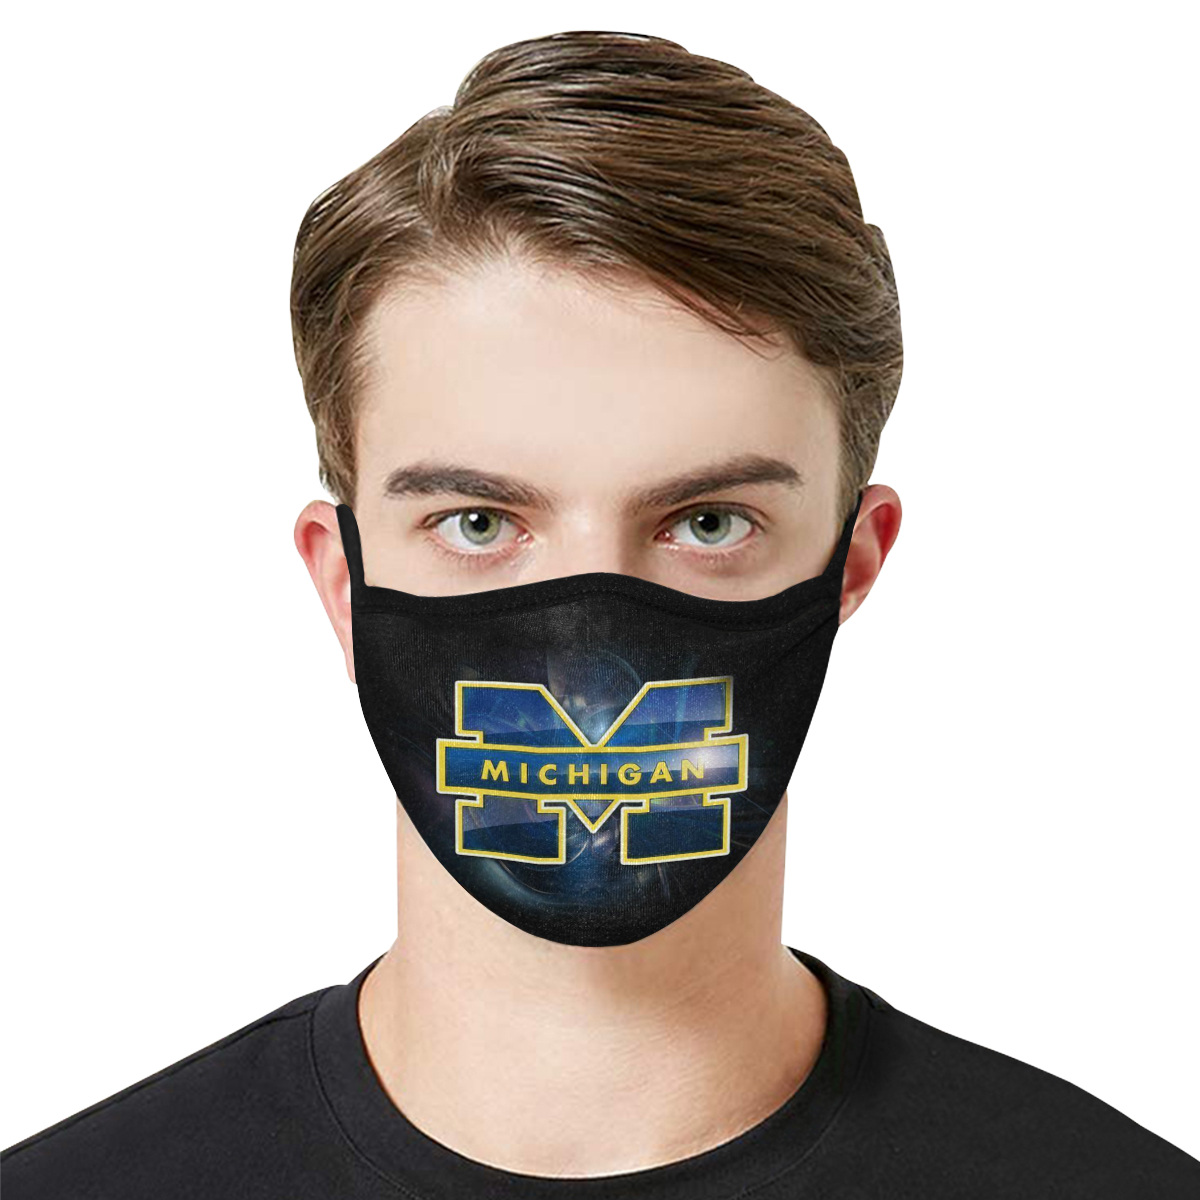 National football league michigan wolverines cotton face mask 4